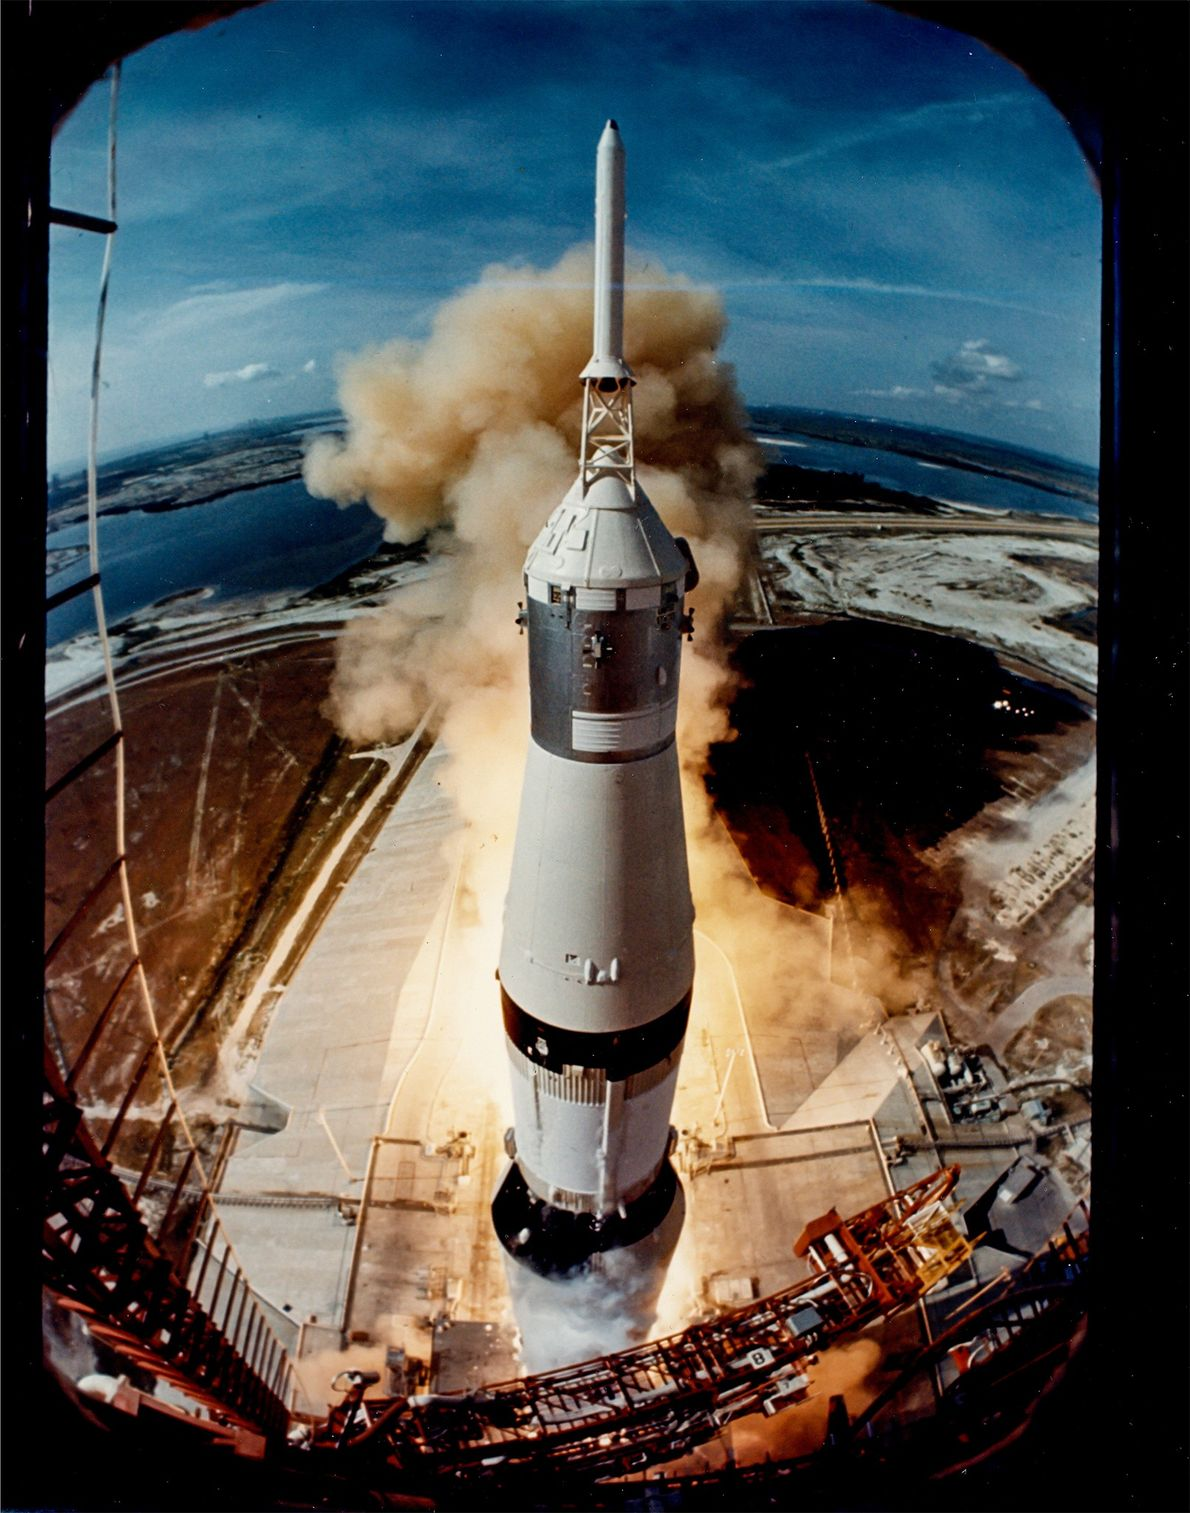 Life magazine photographer Ralph Morse mounted a camera on the launch platform to capture this image ...